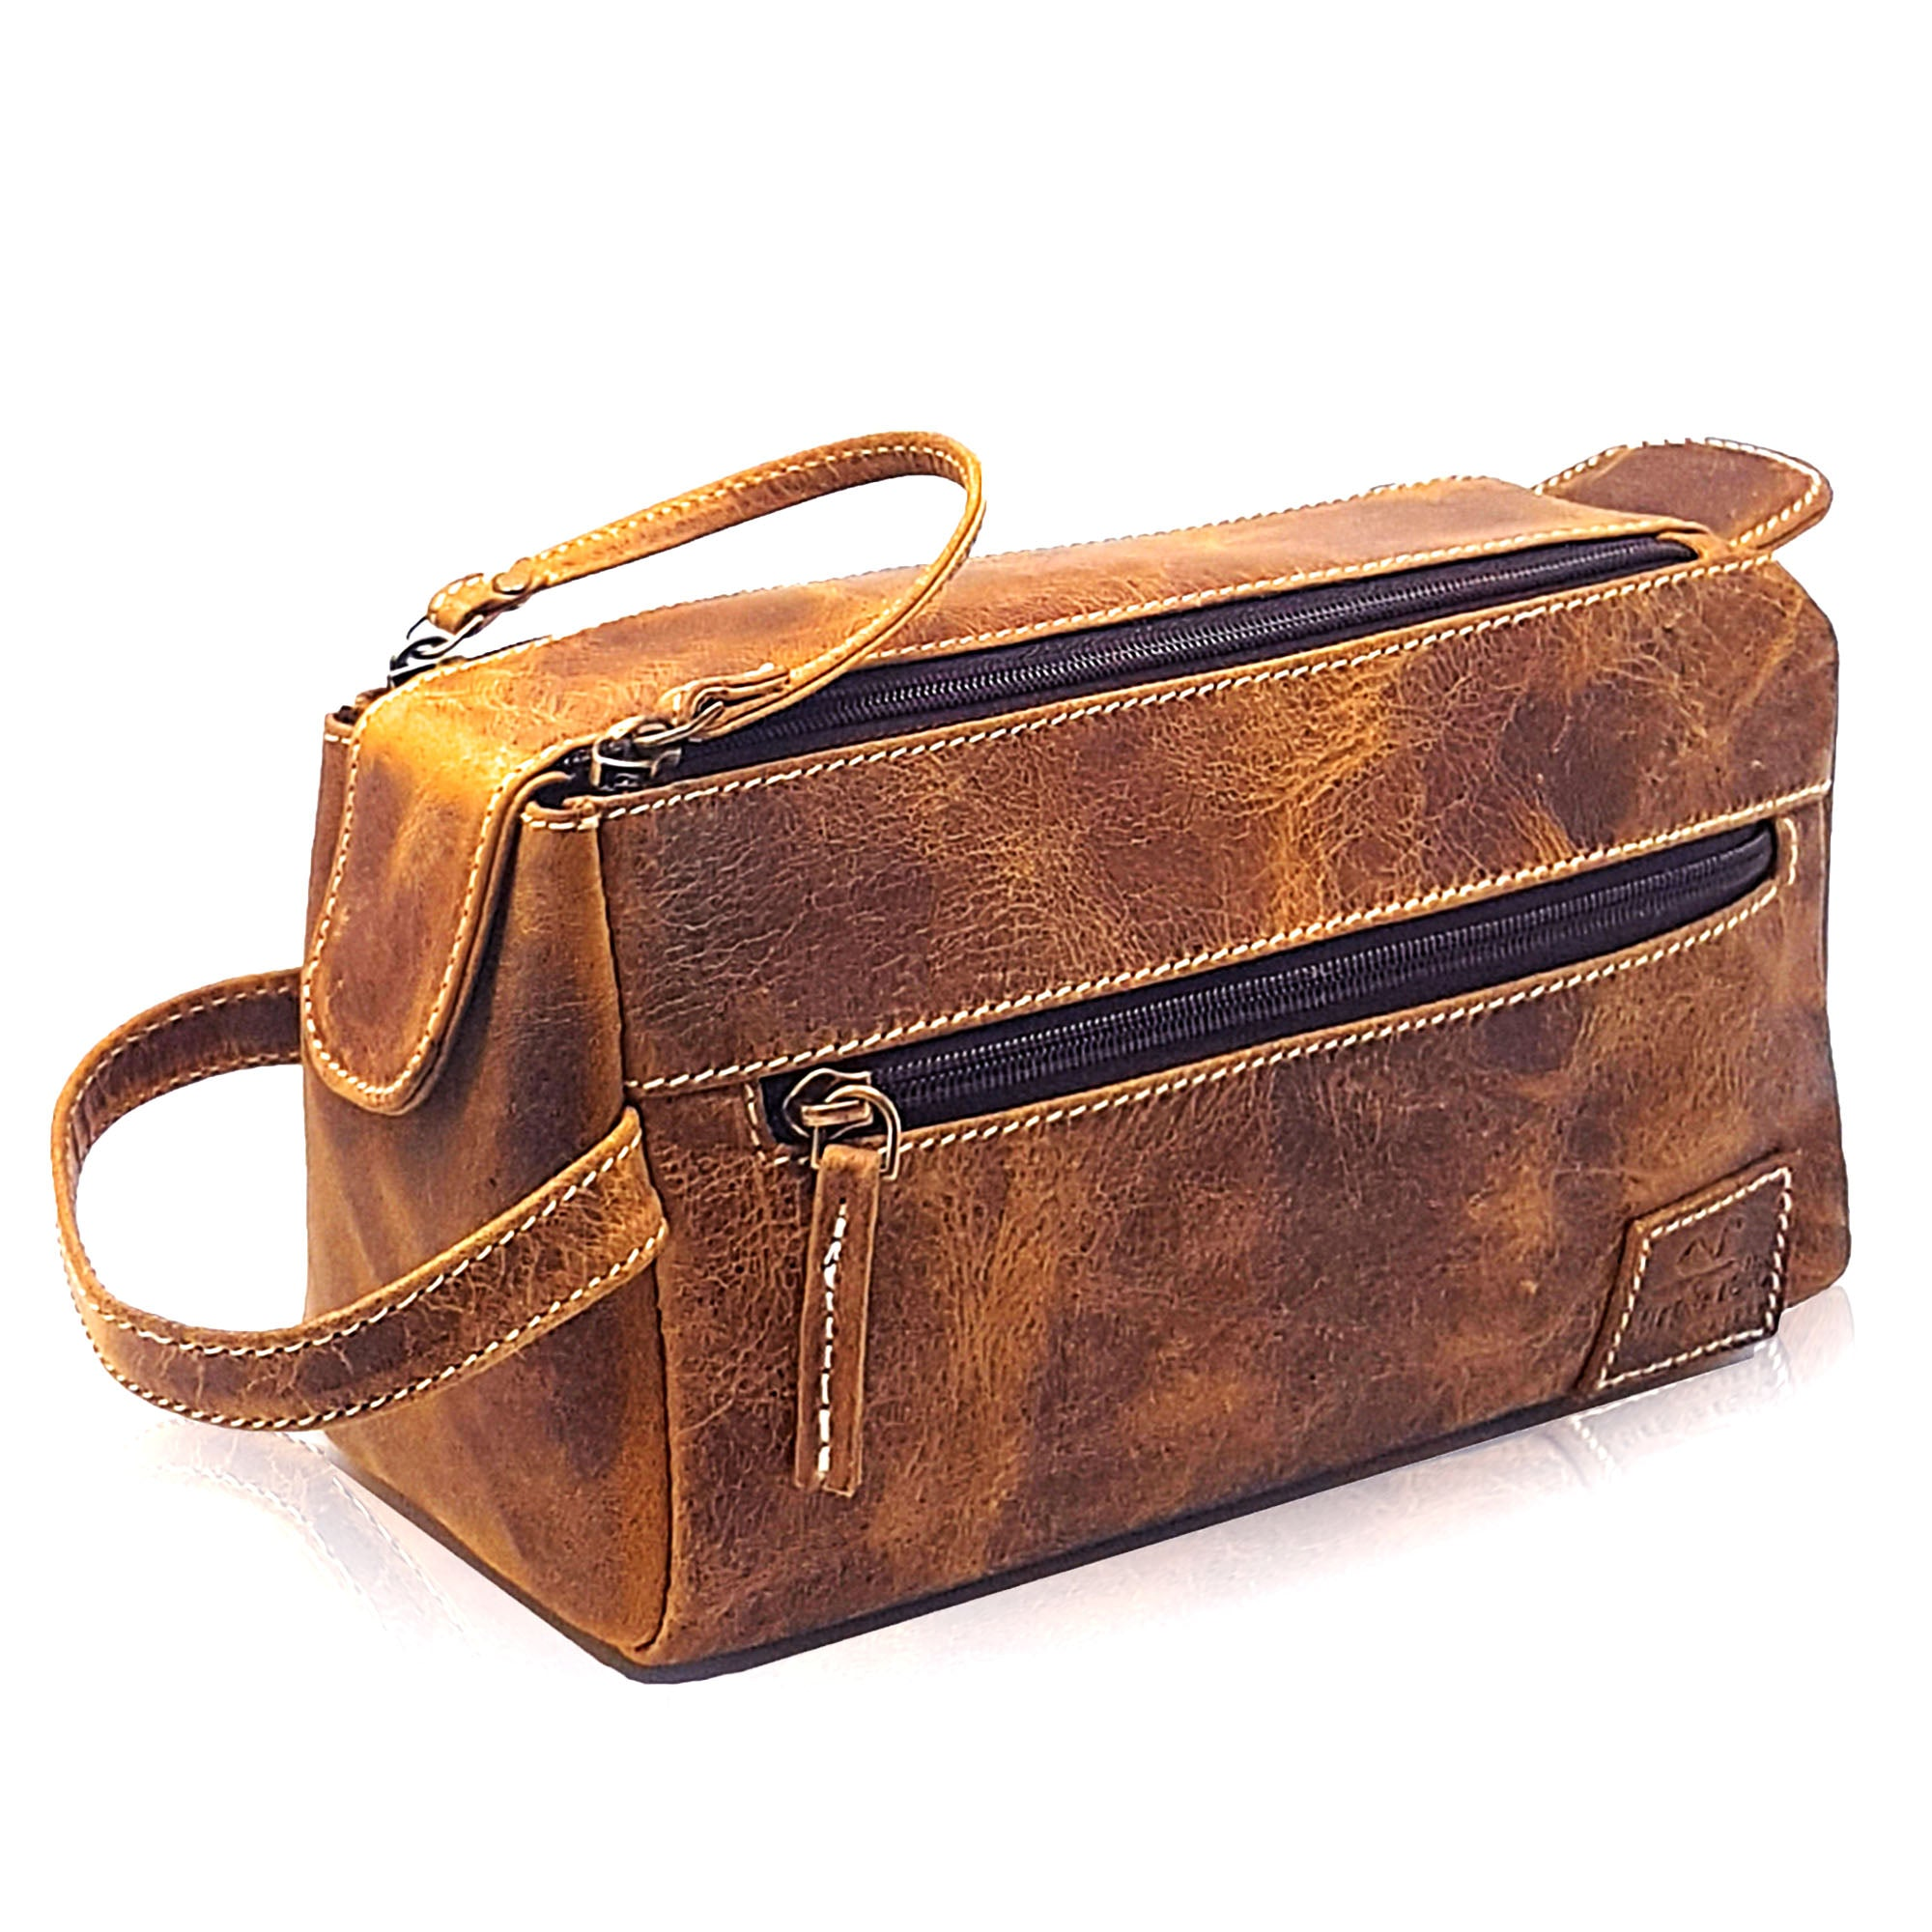 brown leather toiletry bag by Purple Relic